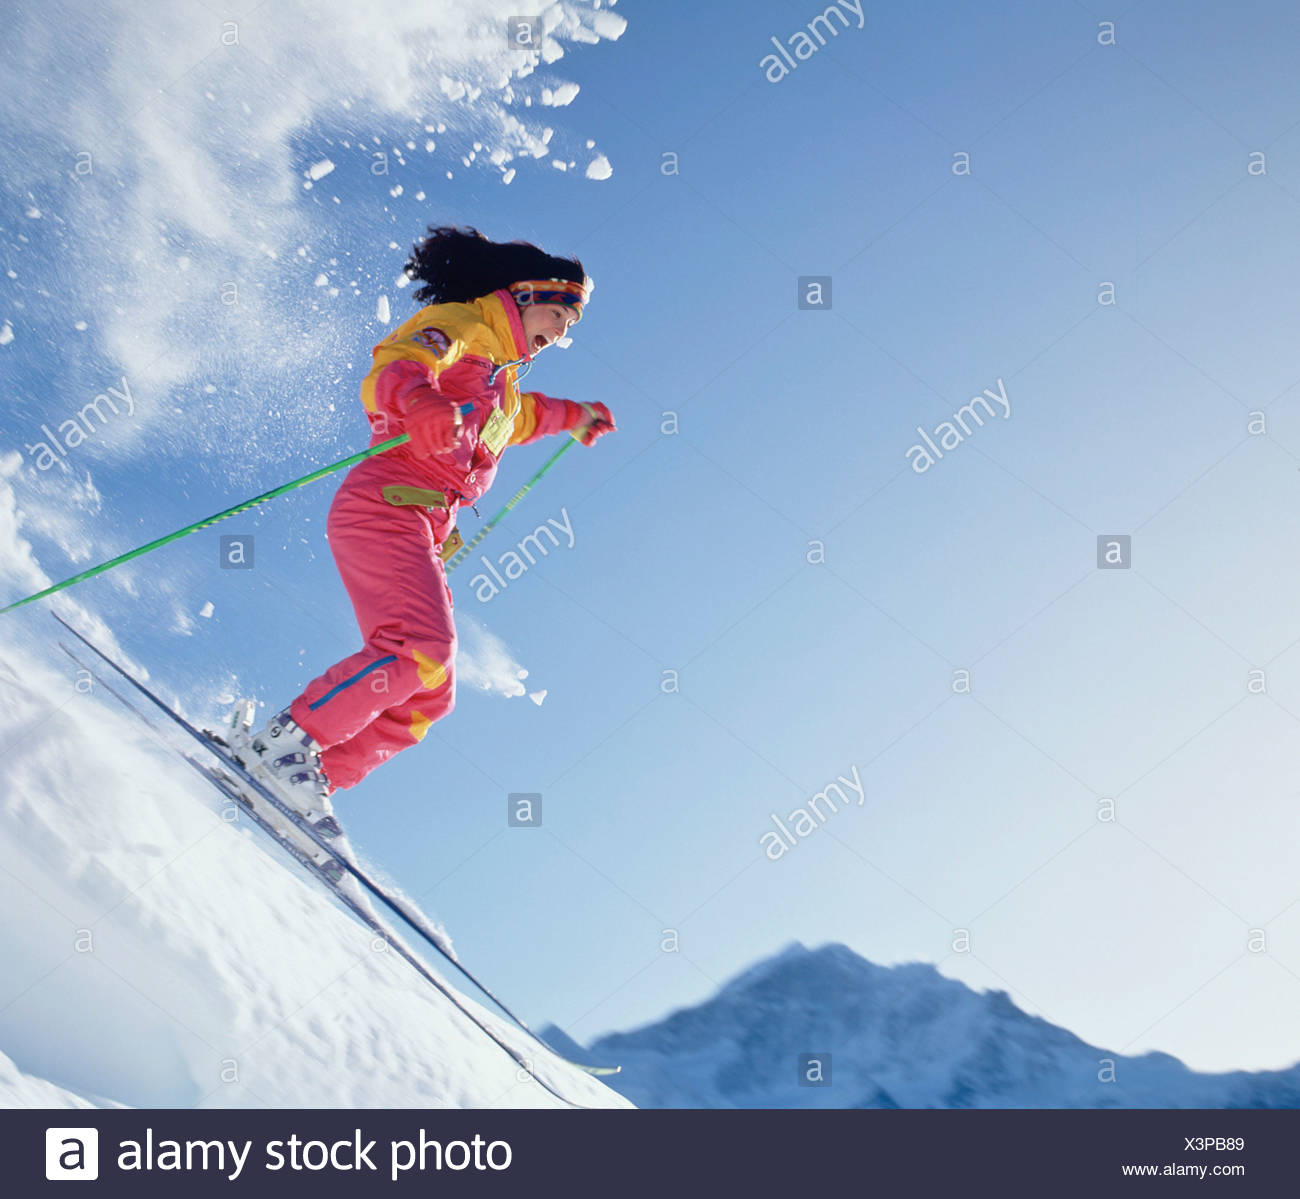 Woman skiing down snow covered mountain slop. Swiss Alps. - Stock Image